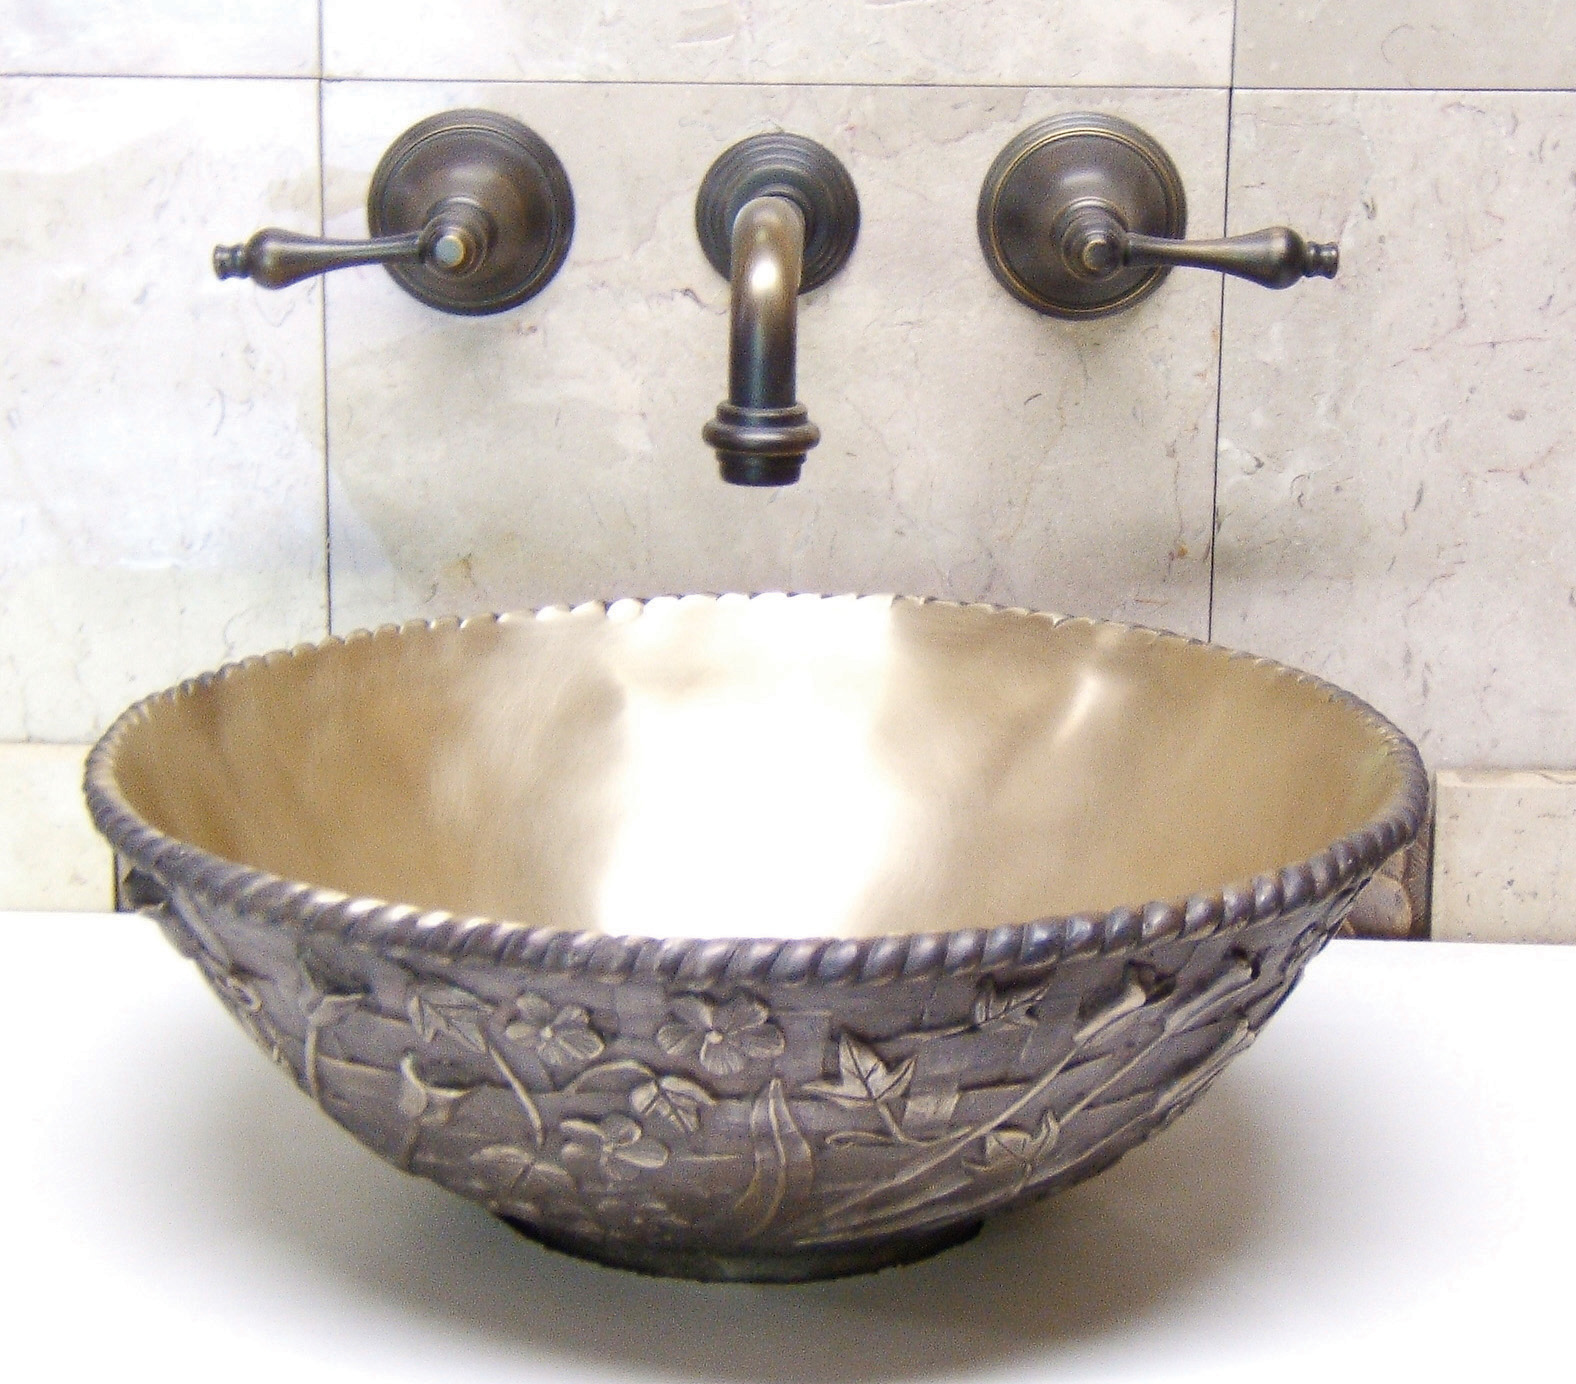 Unique Sinks Connie Deamond Interior Creations Unusual Sinks For The